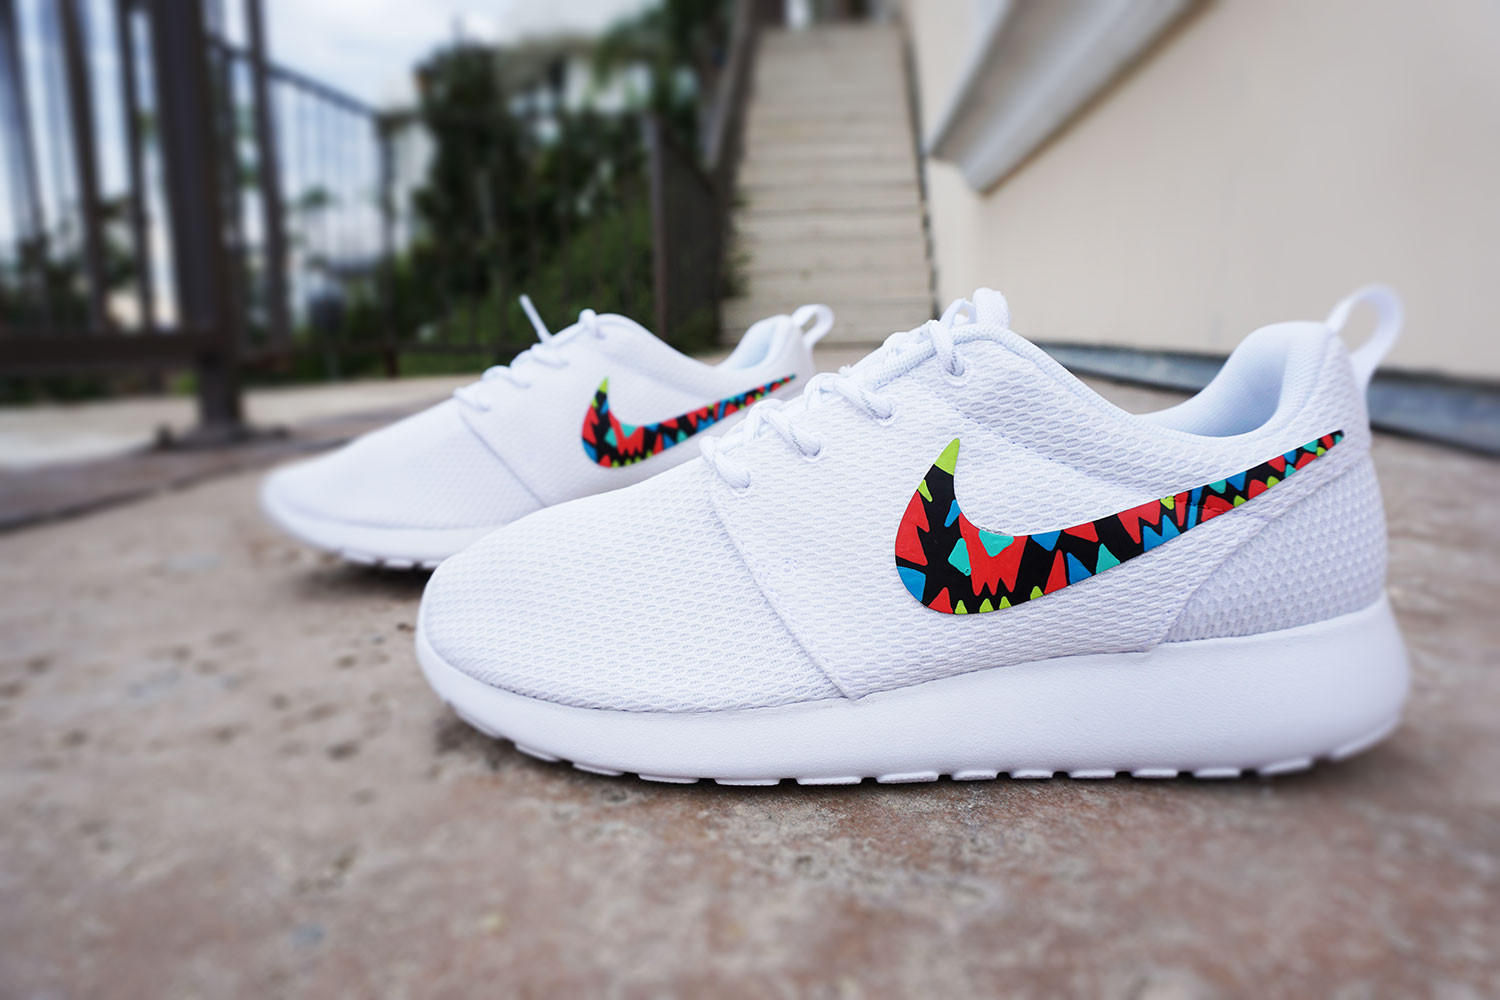 Lastest Custom Nike Roshe Run For Women Tribal Design White With